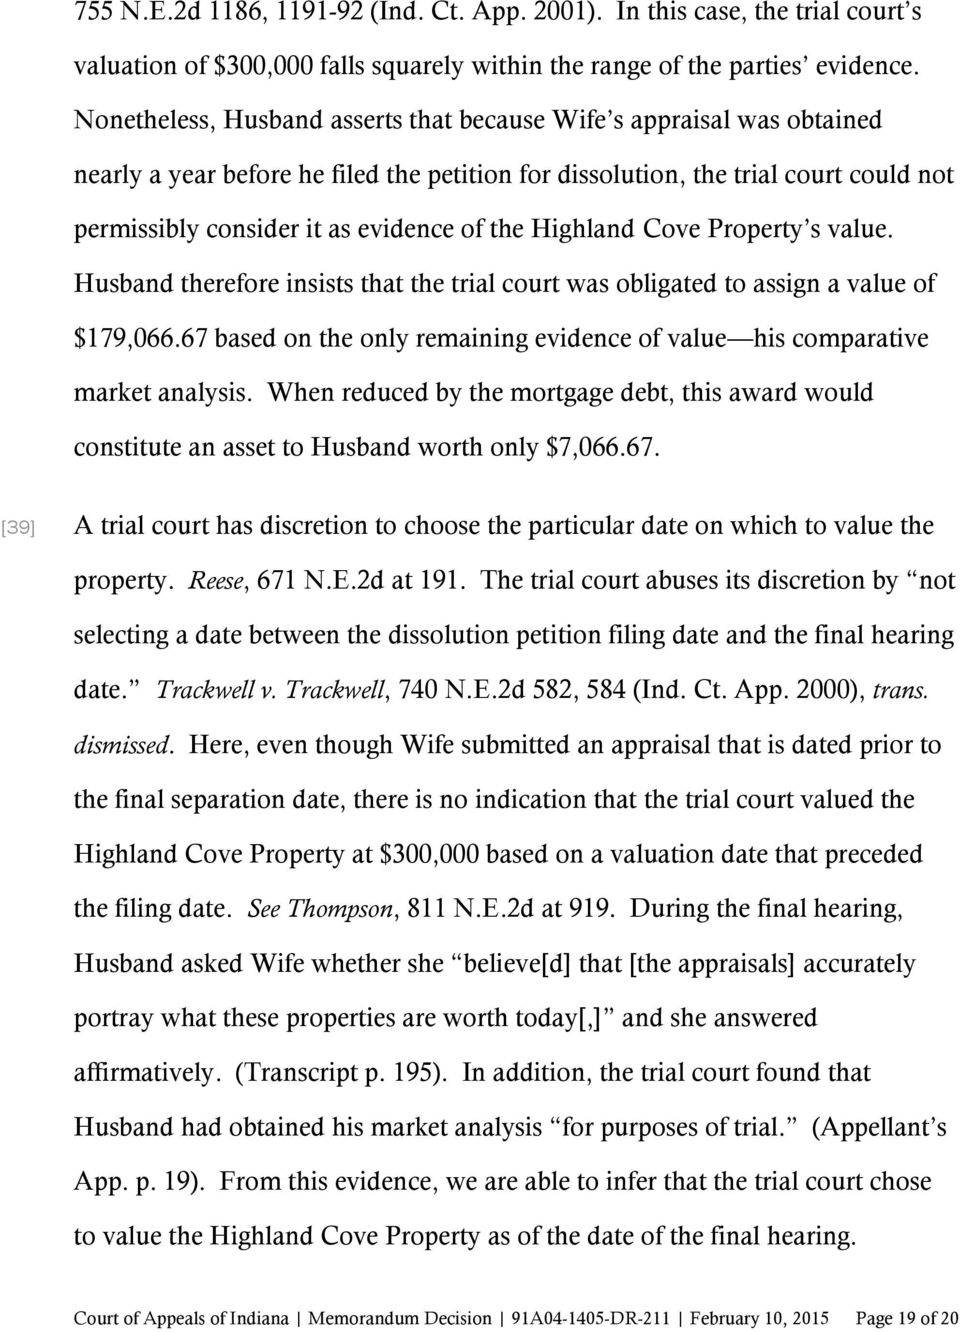 the Highland Cove Property s value. Husband therefore insists that the trial court was obligated to assign a value of $179,066.